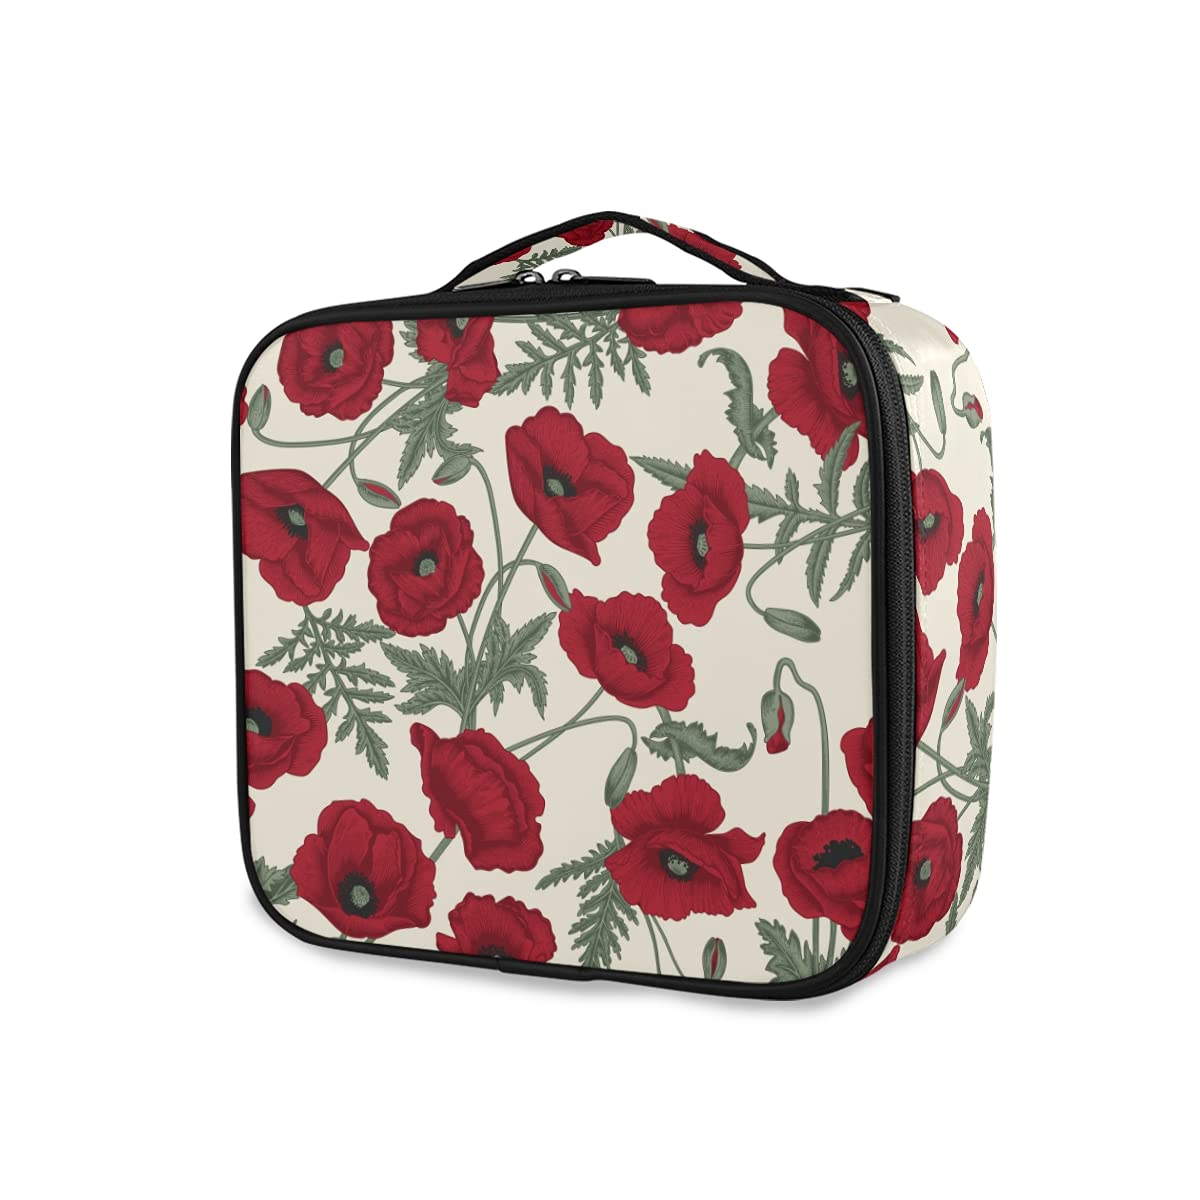 35% OFF OTVEE Vintage Red Poppy safety Flowers Makeup Cosmetic Bag Travel L